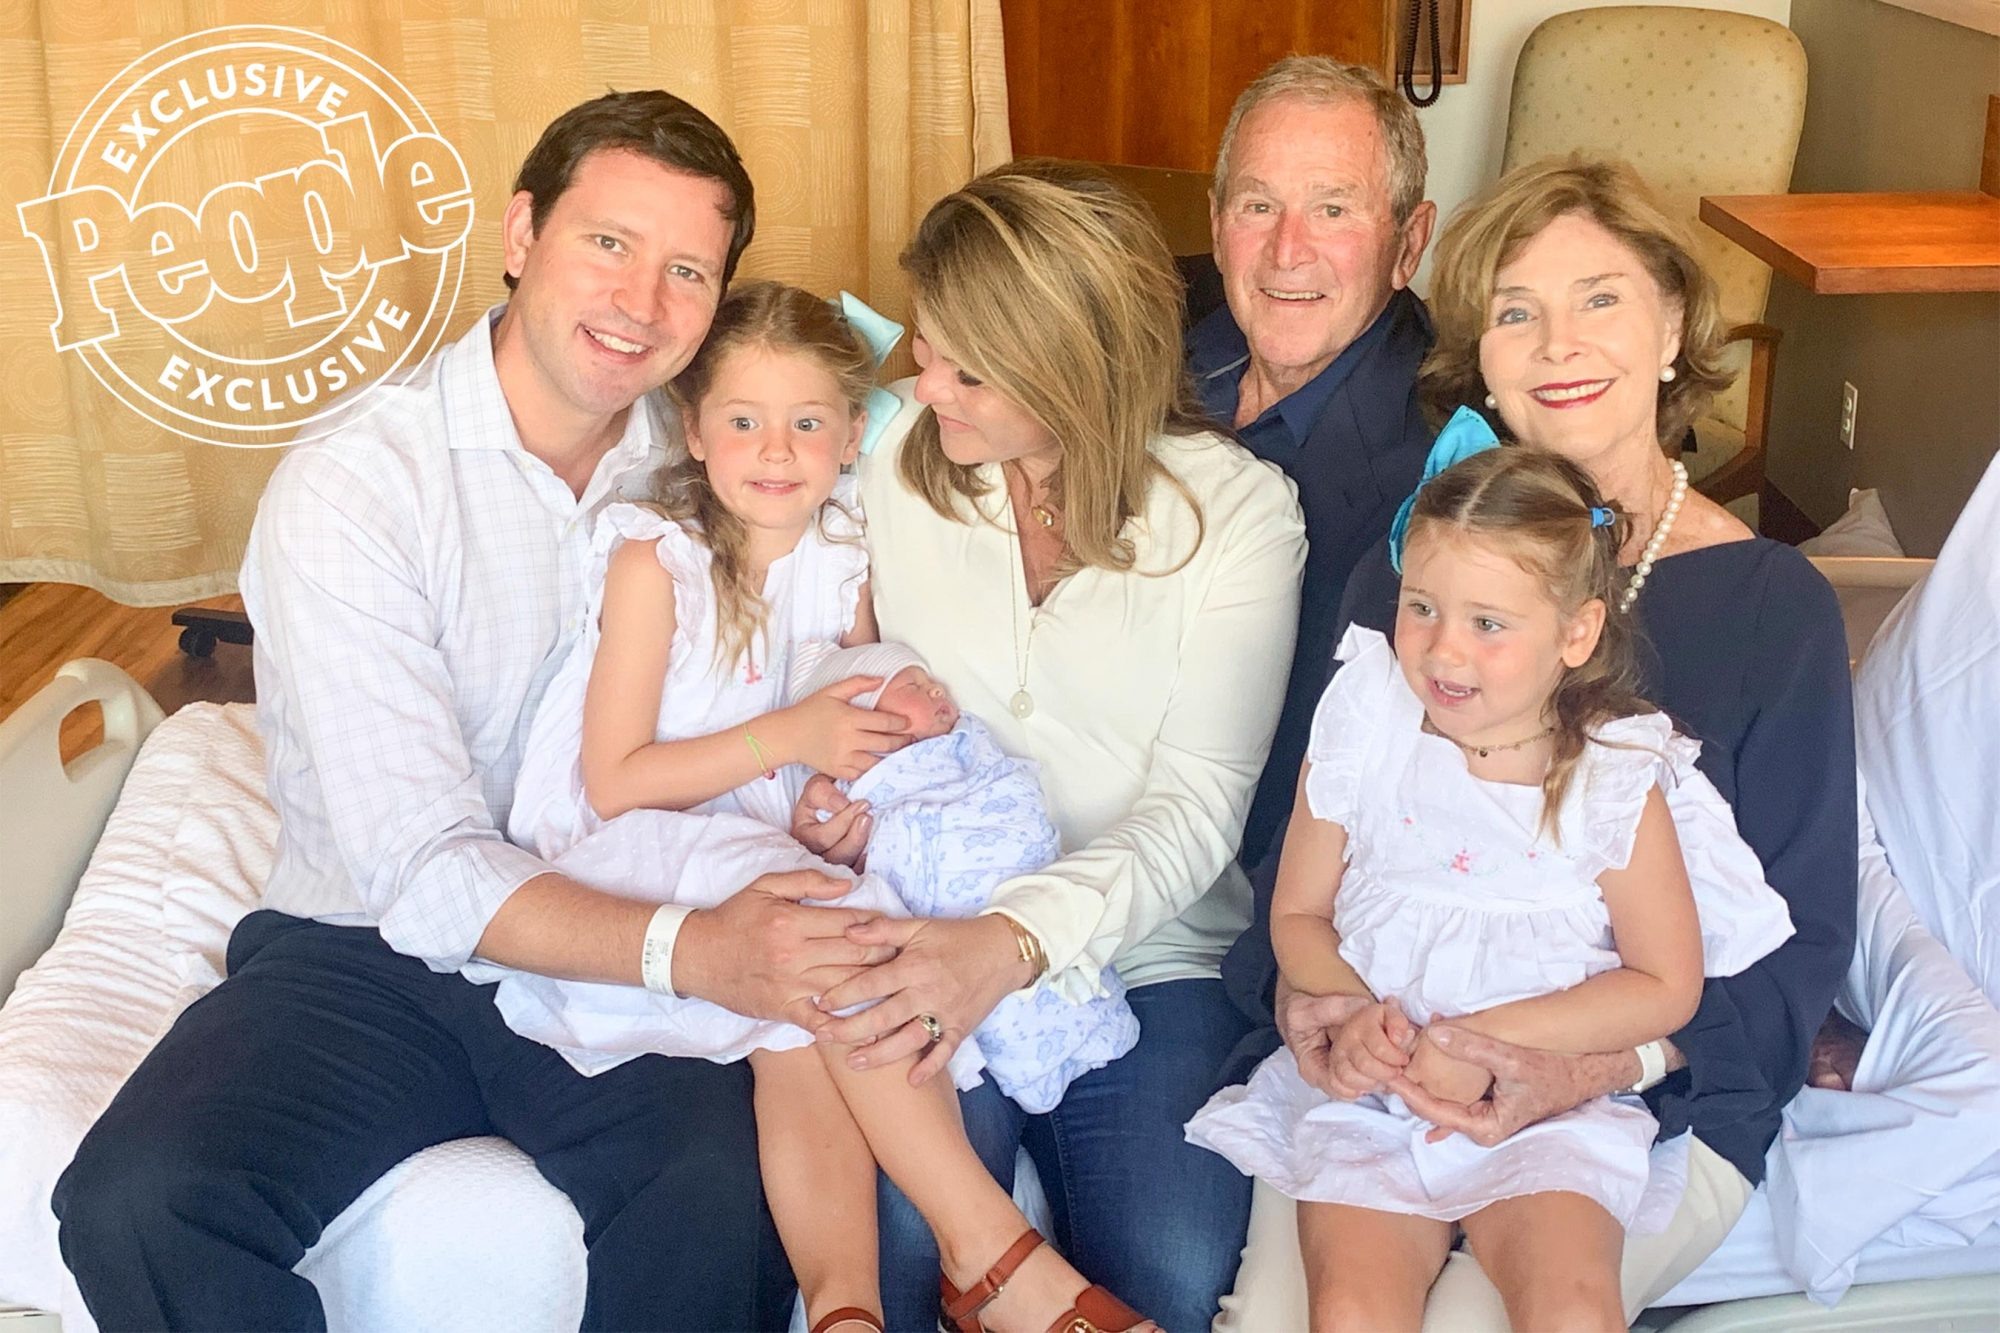 Jenna Bush Hager Family CR: Jenna Bush Hager